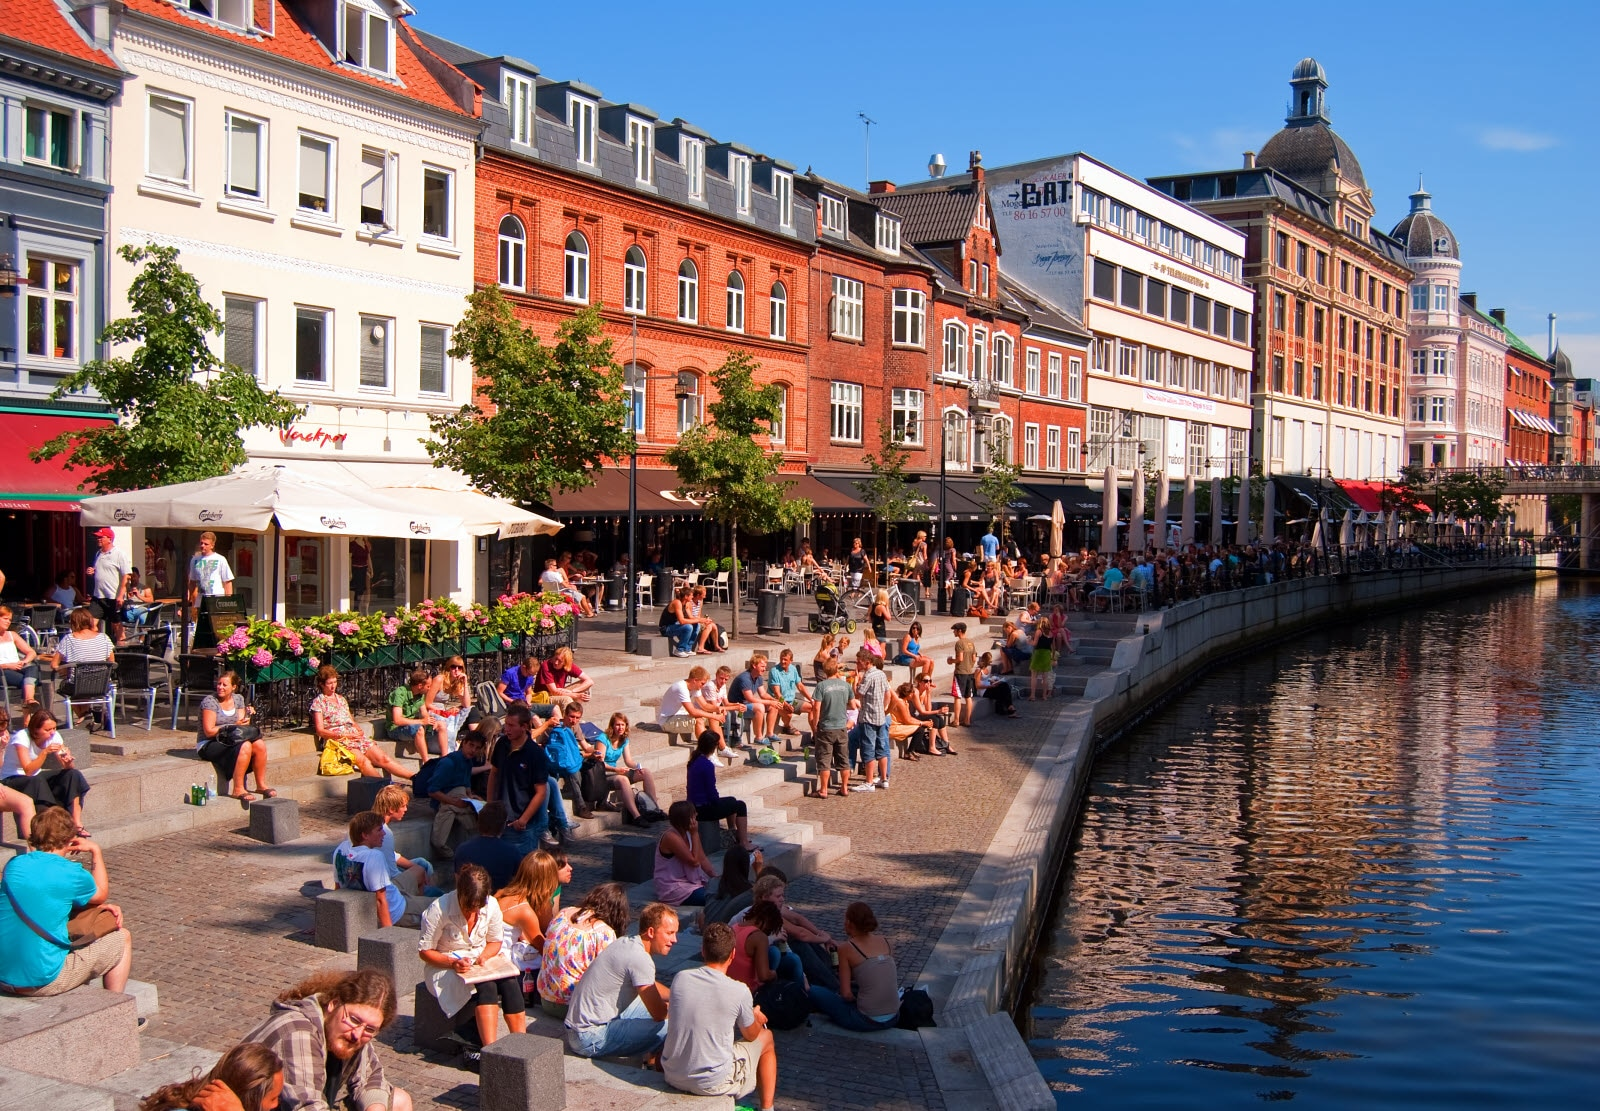 The canal in Aarhus